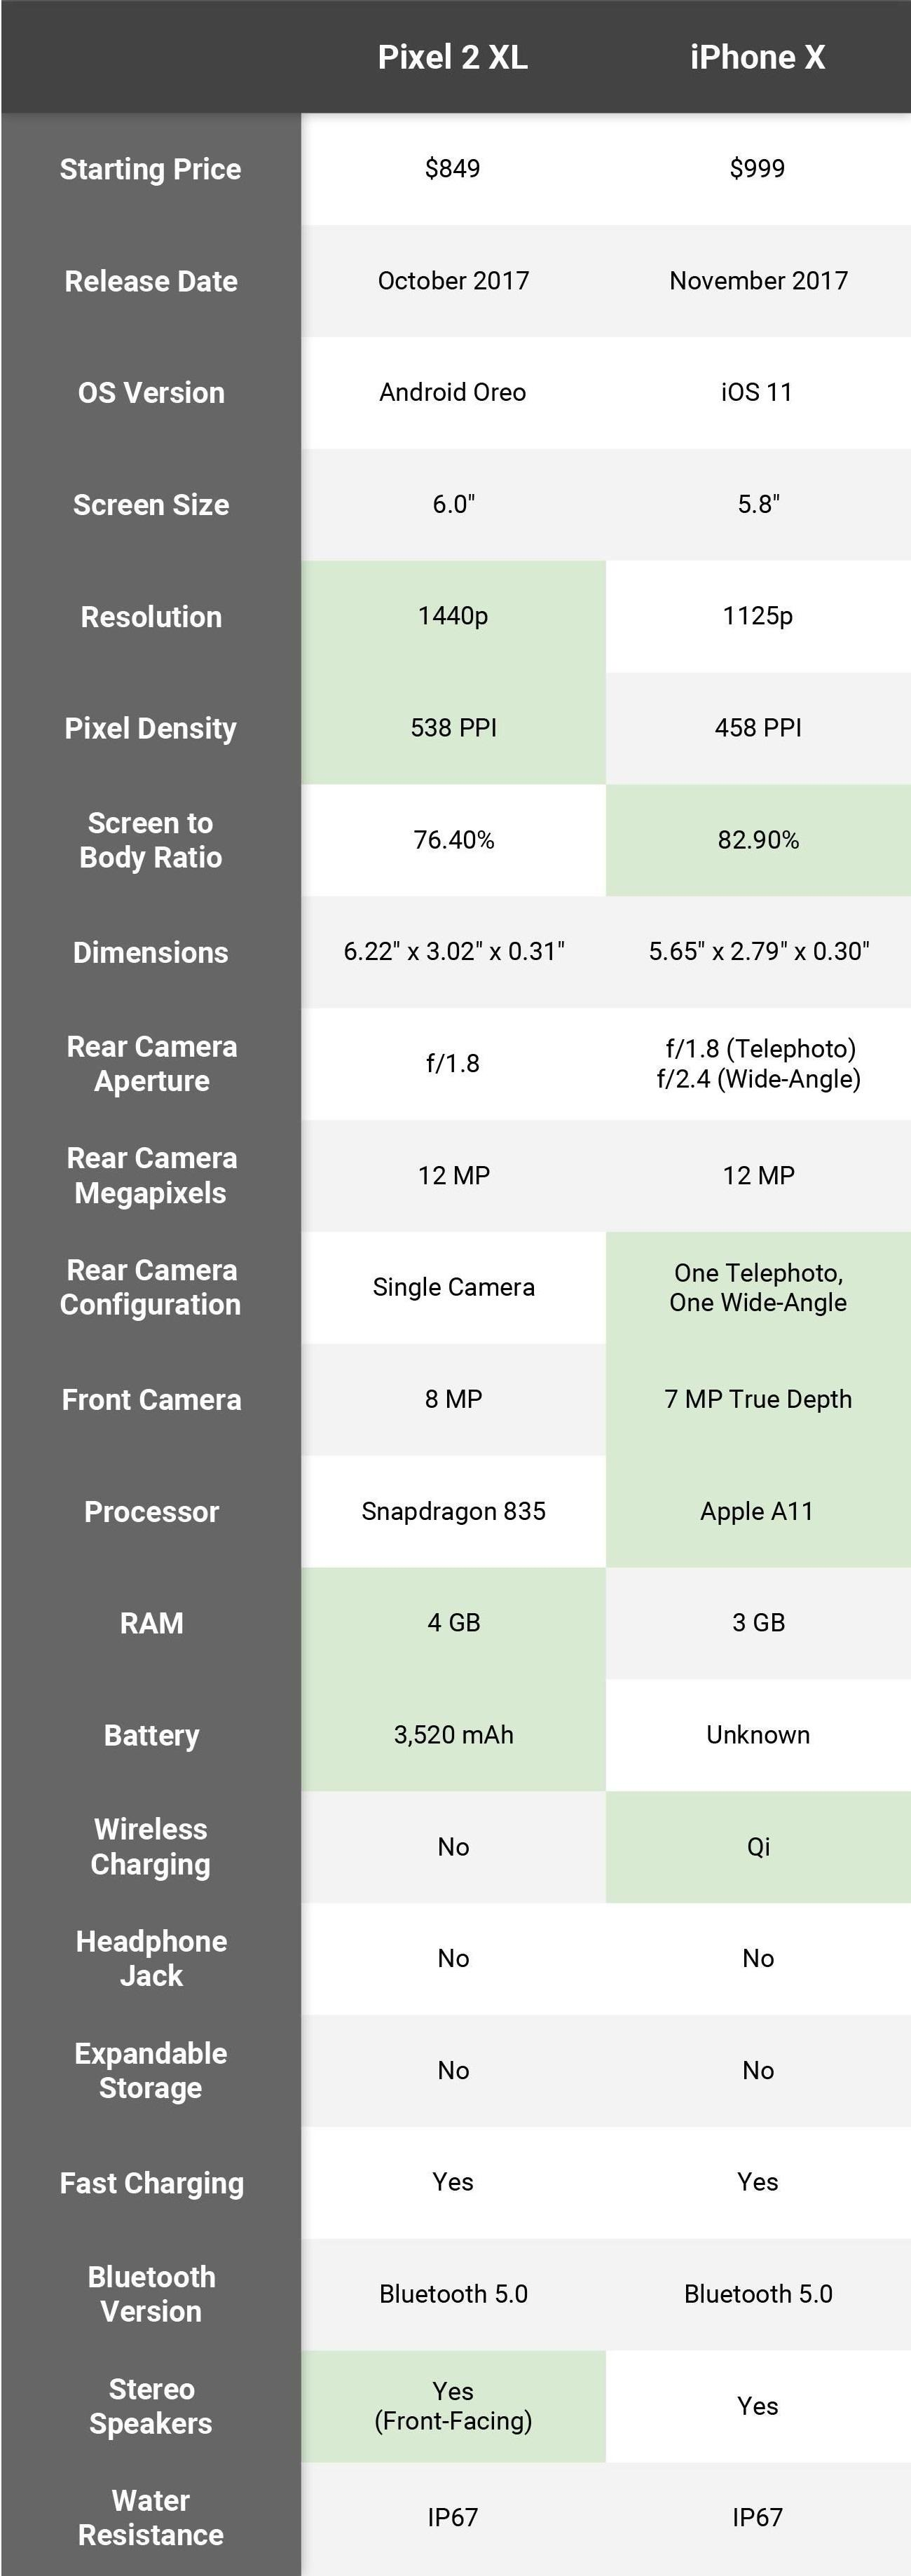 Pixel 2 vs iPhone X